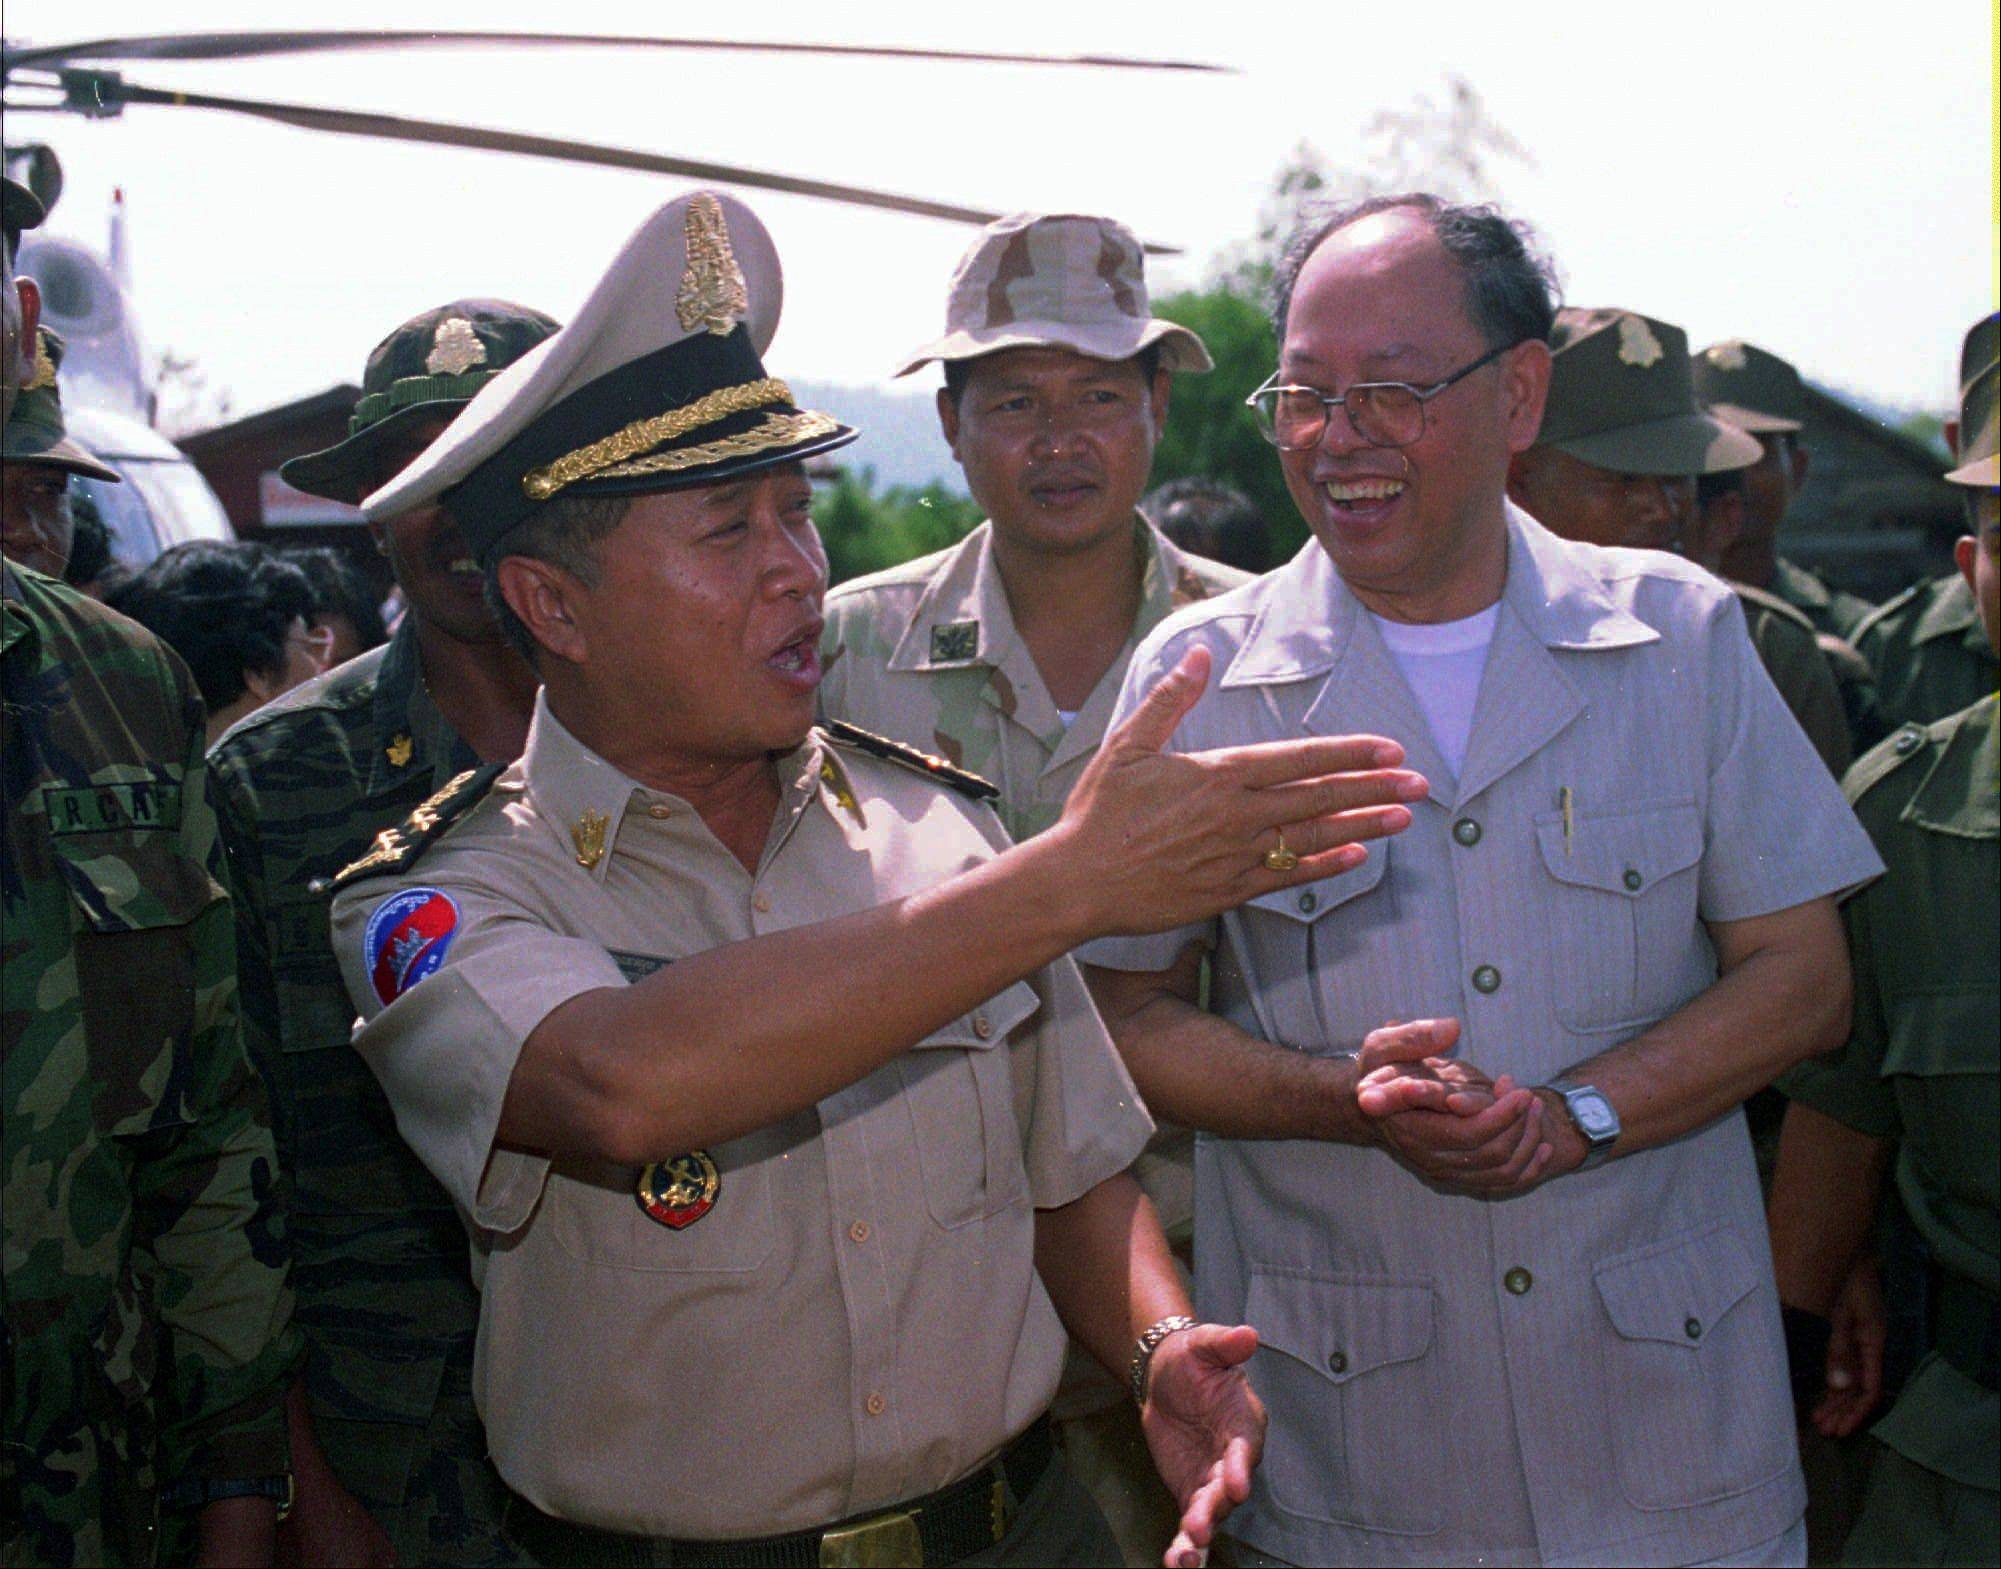 First Prime Minister Prince Norodom Ranariddh, left, chats with dissident Khmer Rouge leader Ieng Sary, right, upon his arrival at Malai, Cambodia.